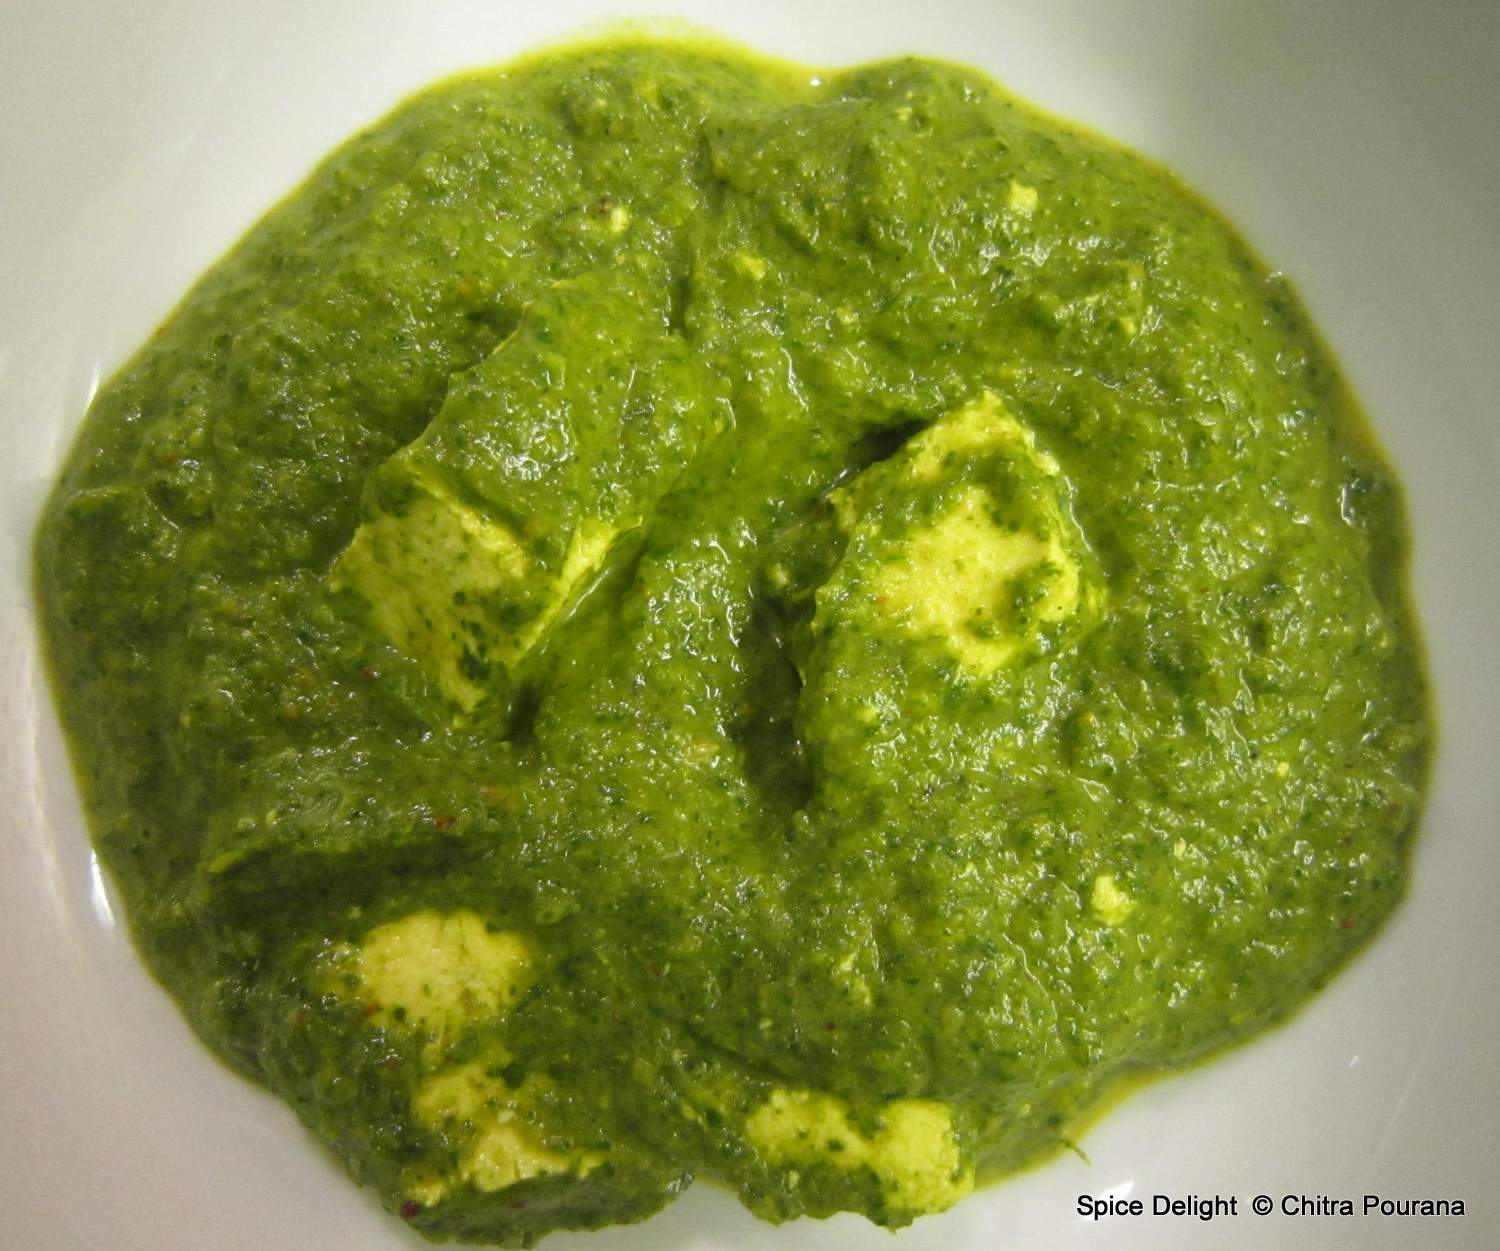 Spice Delight: Paneer with Broccoli Rabe (Saag Paneer)